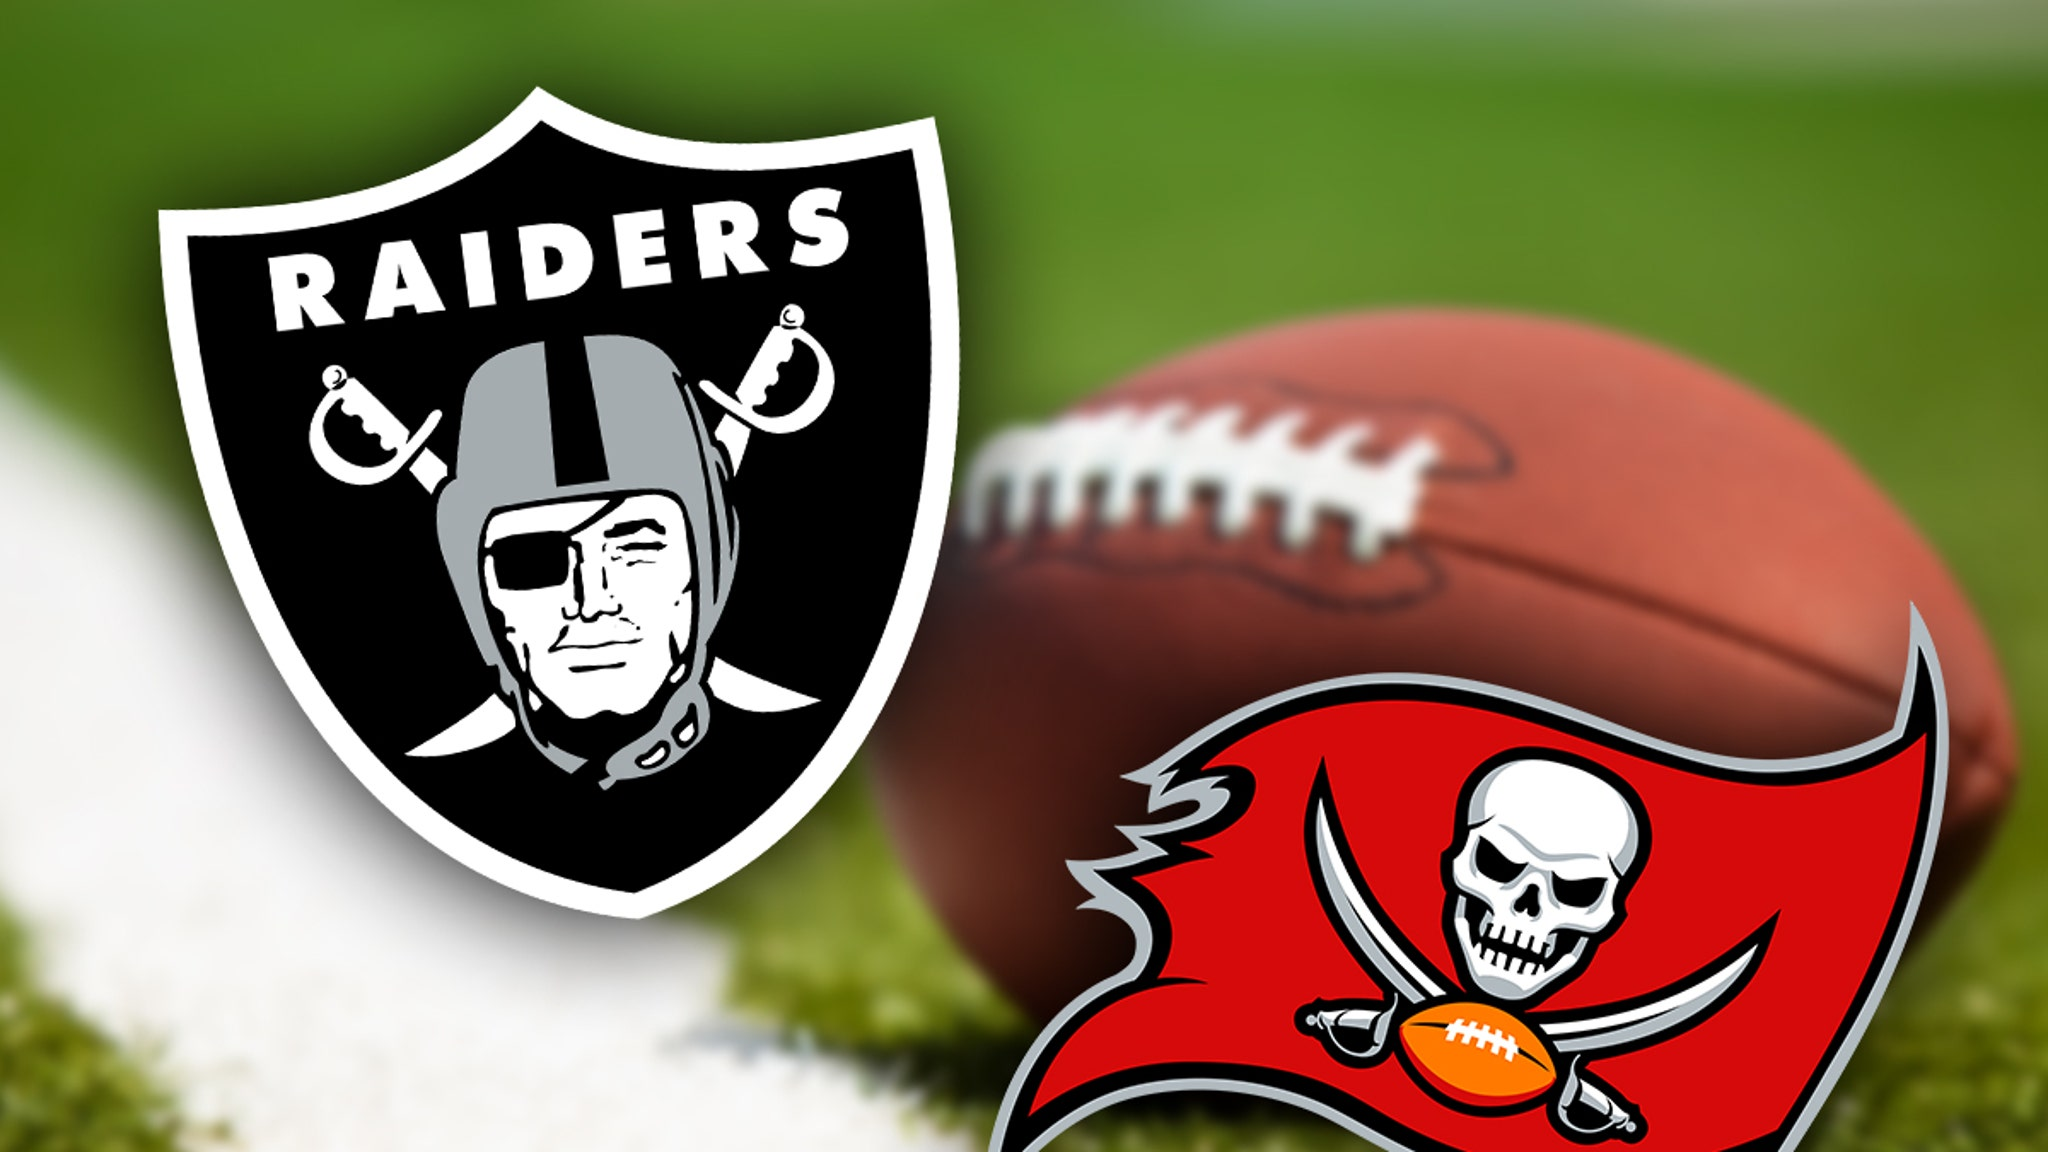 Raiders vs. Bucs NFL Bumps Game from Sunday Night Spot ... Over COVID Fears